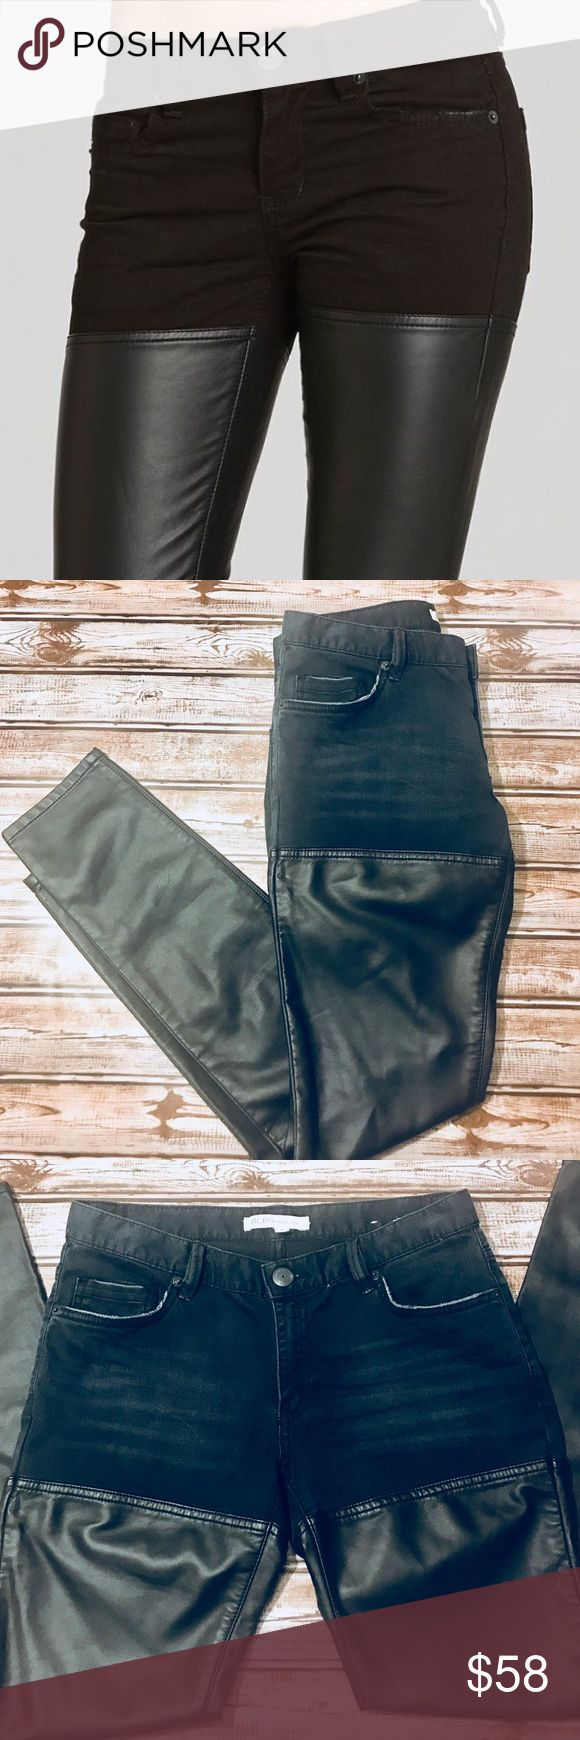 BCBGeneration Jasper Skinny Thigh Leather Denim New! Without tags. BCBGeneration Jeans with Faux Leather Panel. Dark blue wash jeans.  72% Cotton  26% Polyester  2% Spandex  Contrast: 60% Polyurethane  40% Rayon BCBGeneration Jeans Skinny